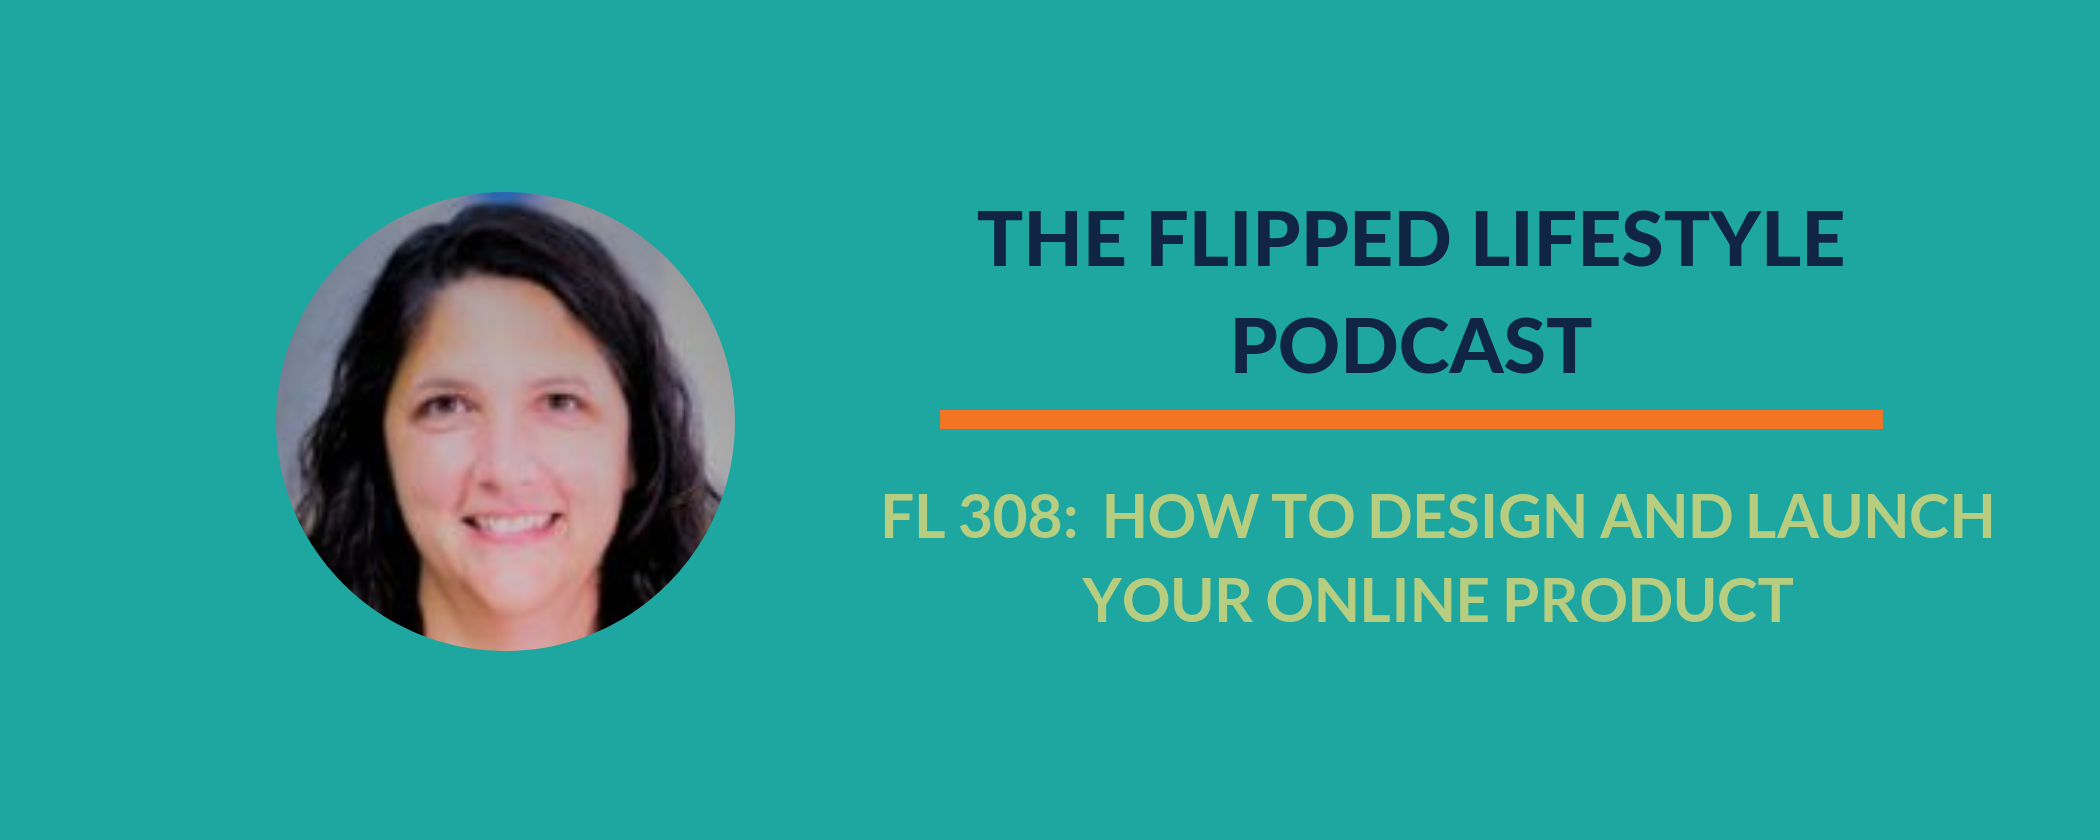 EARLY PODCAST: FL308 - How To Design and Launch Your Online Product